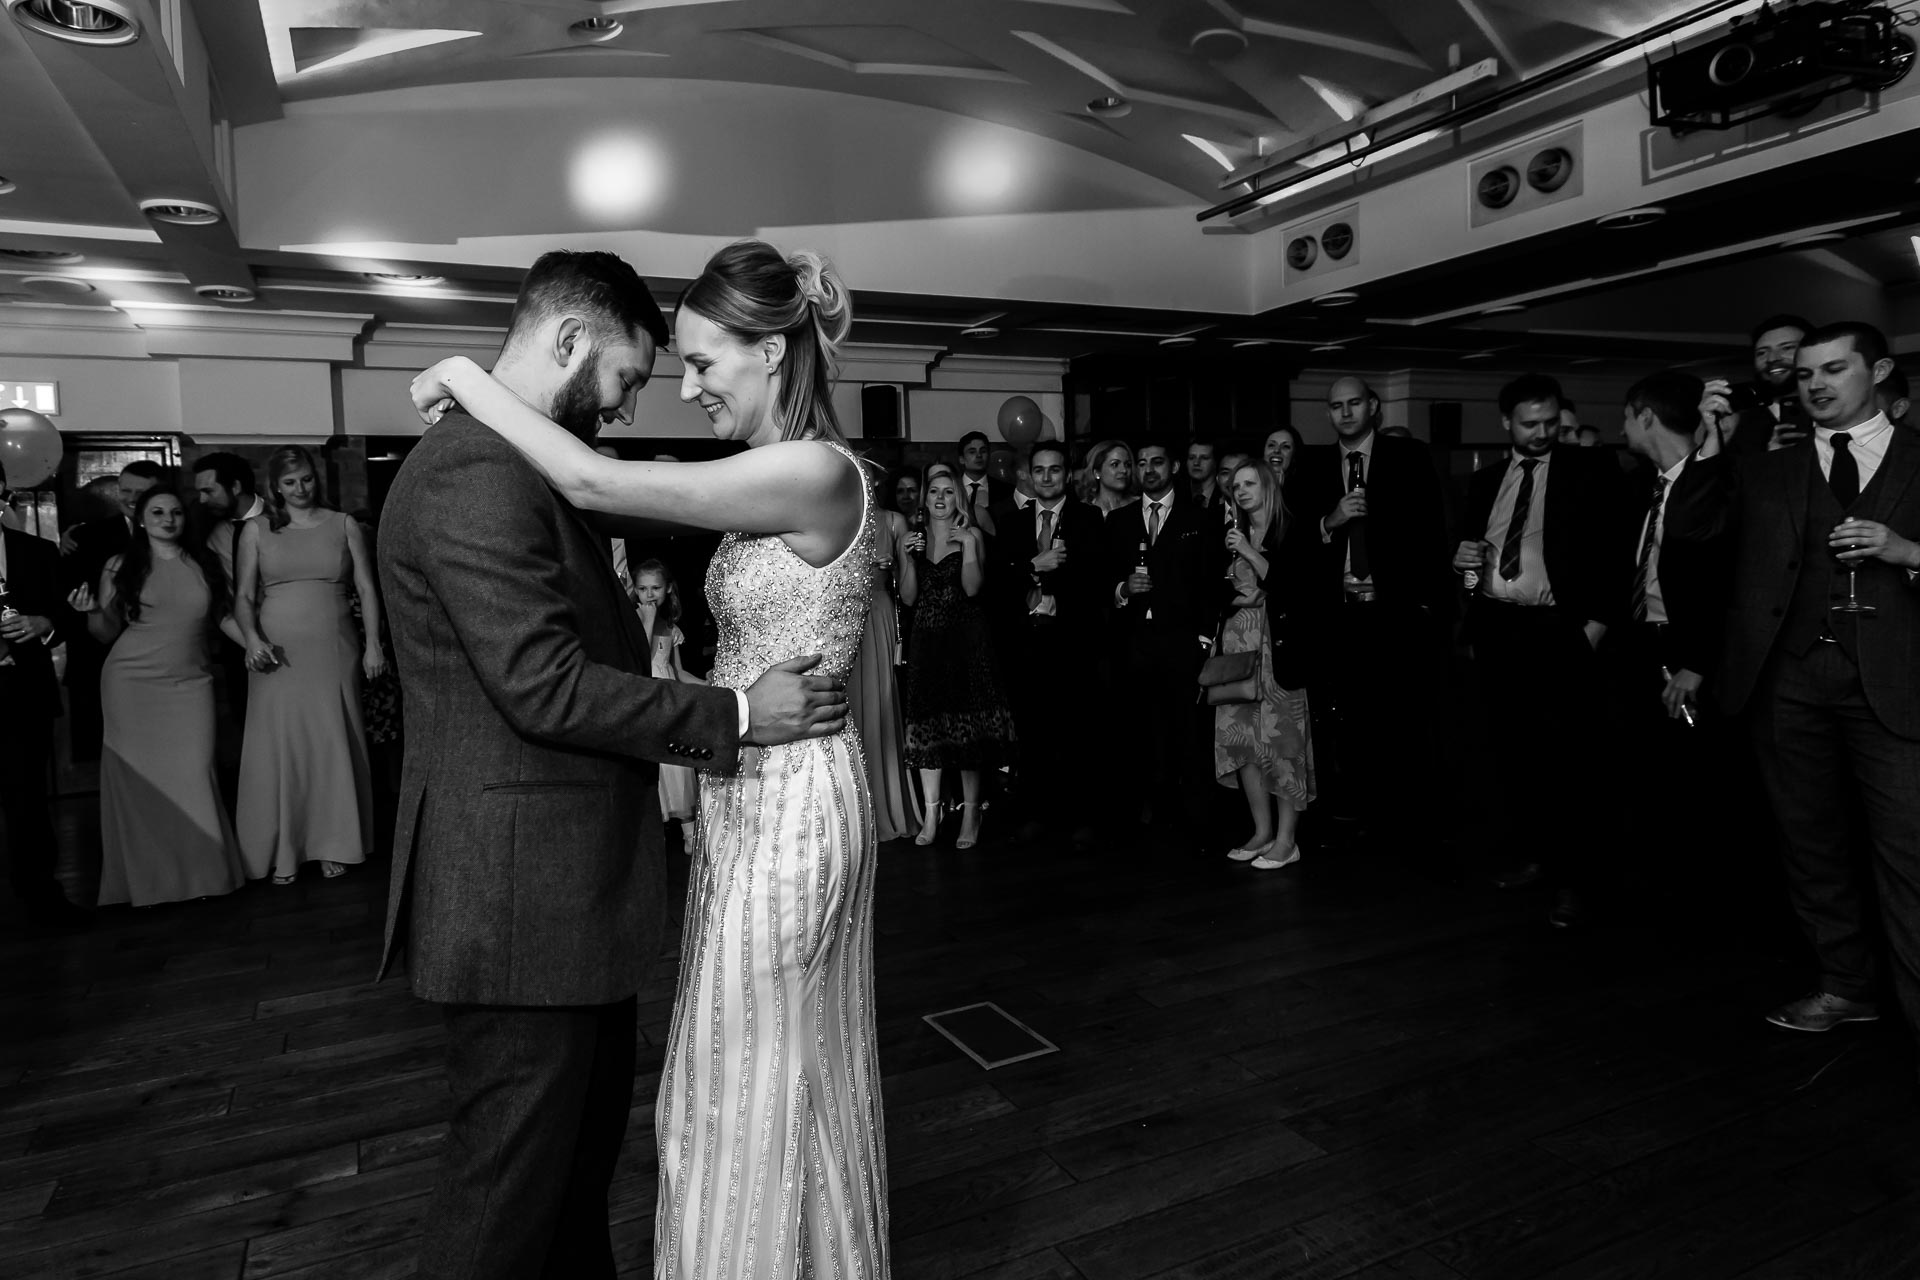 An image of a happy couple dancing their first dance on their wedding day - wedding day photography by Sam of Hansford Carter, a Kent-based wedding photographer